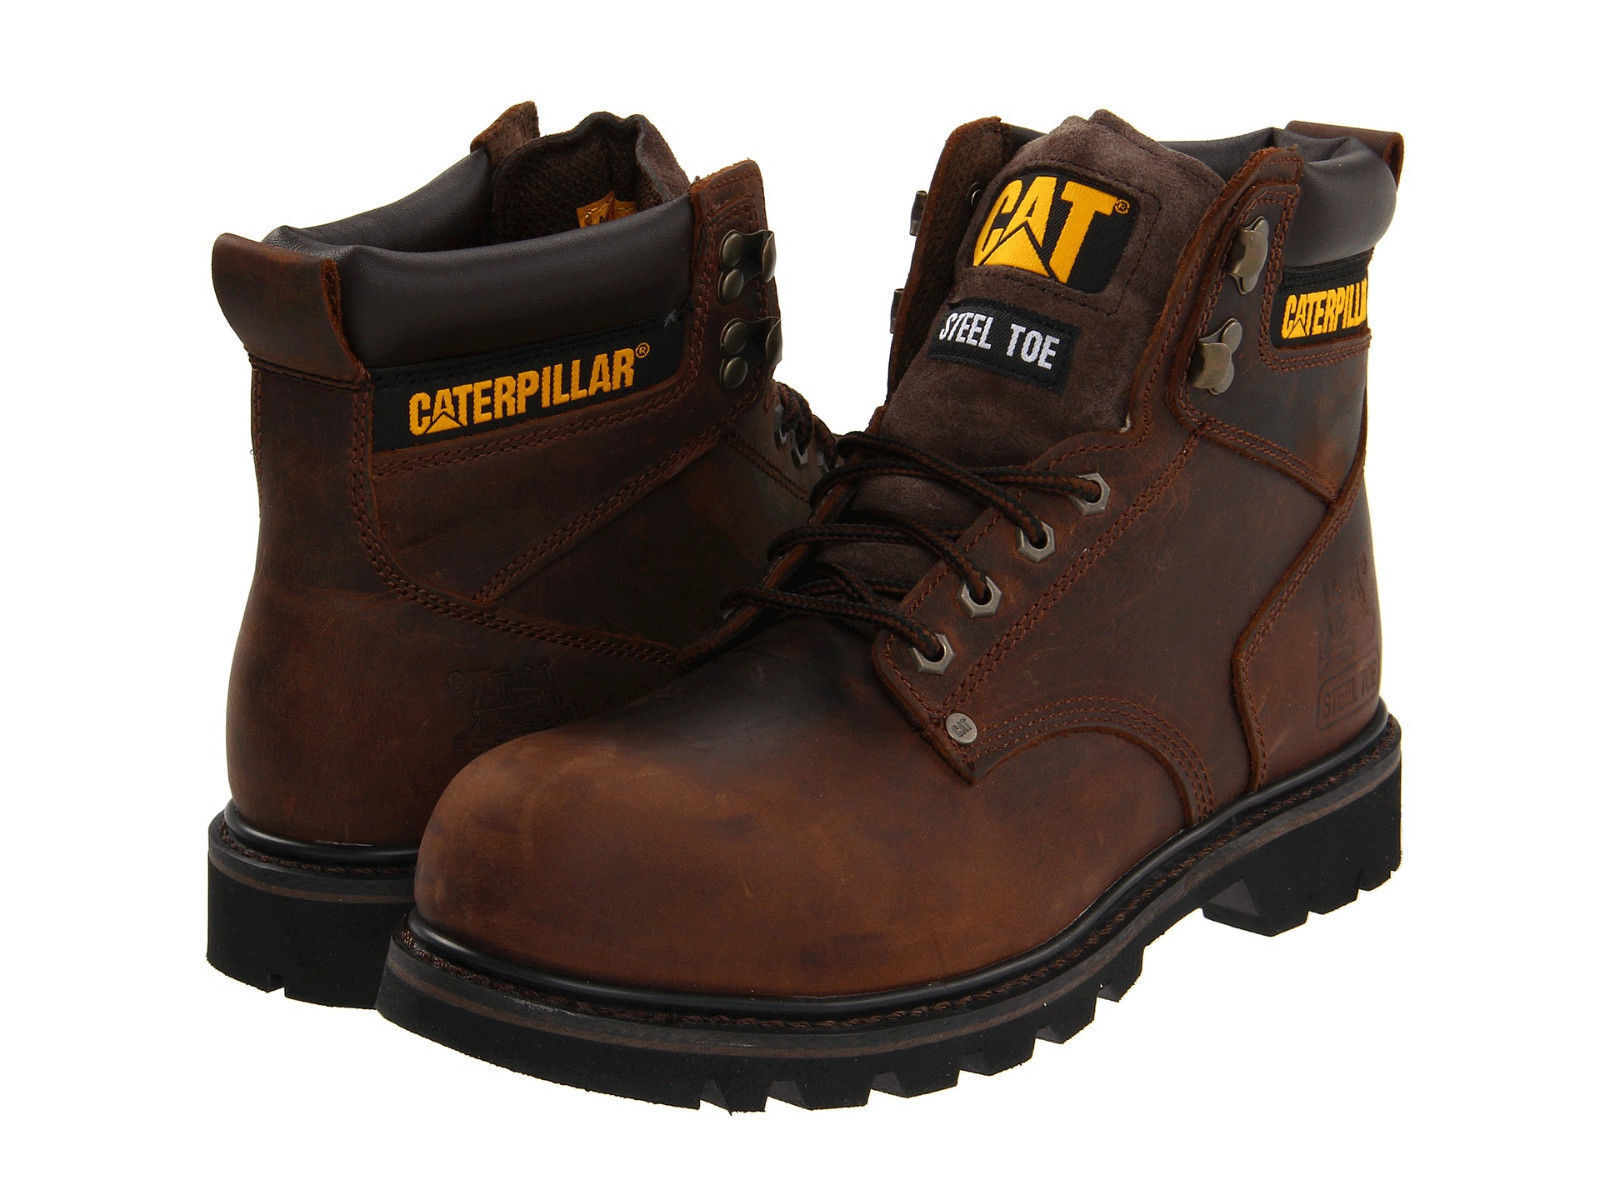 Men Caterpillar Second Shift Steel Toe Work Boot P89586 Dark Brown 100%Authentic